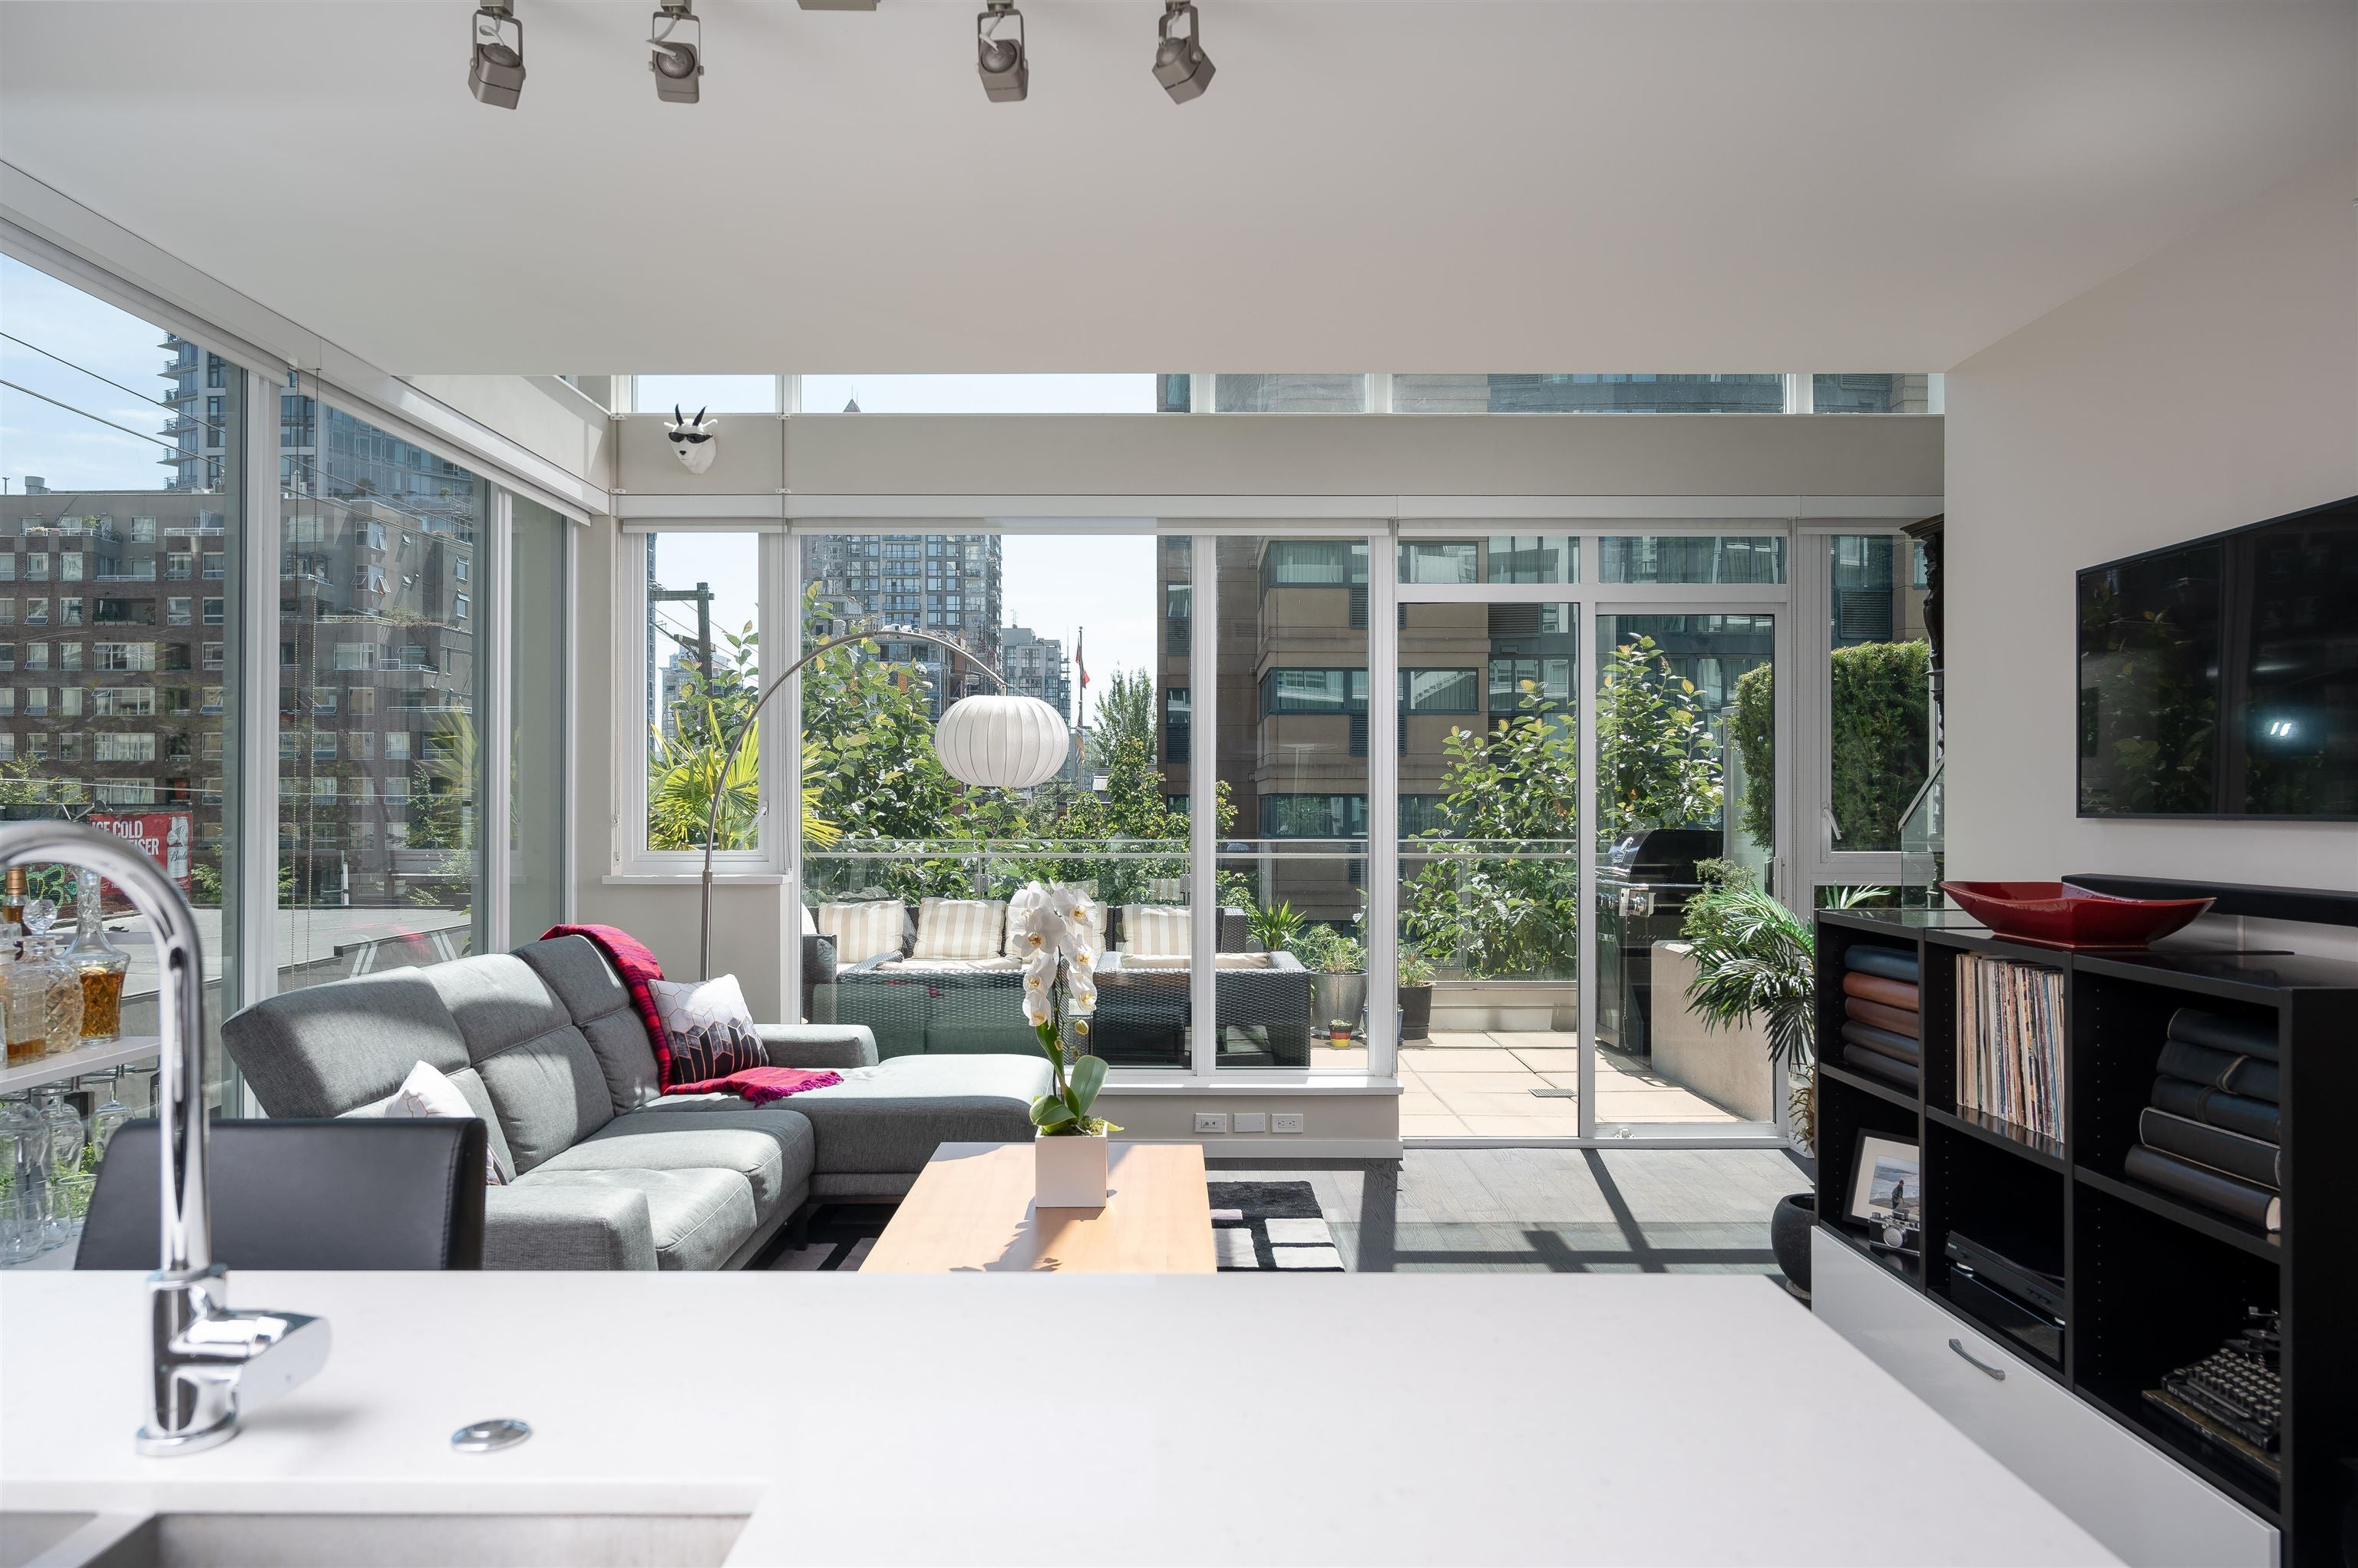 306 1351 CONTINENTAL STREET - Downtown VW Apartment/Condo for sale, 2 Bedrooms (R2617899) - #3